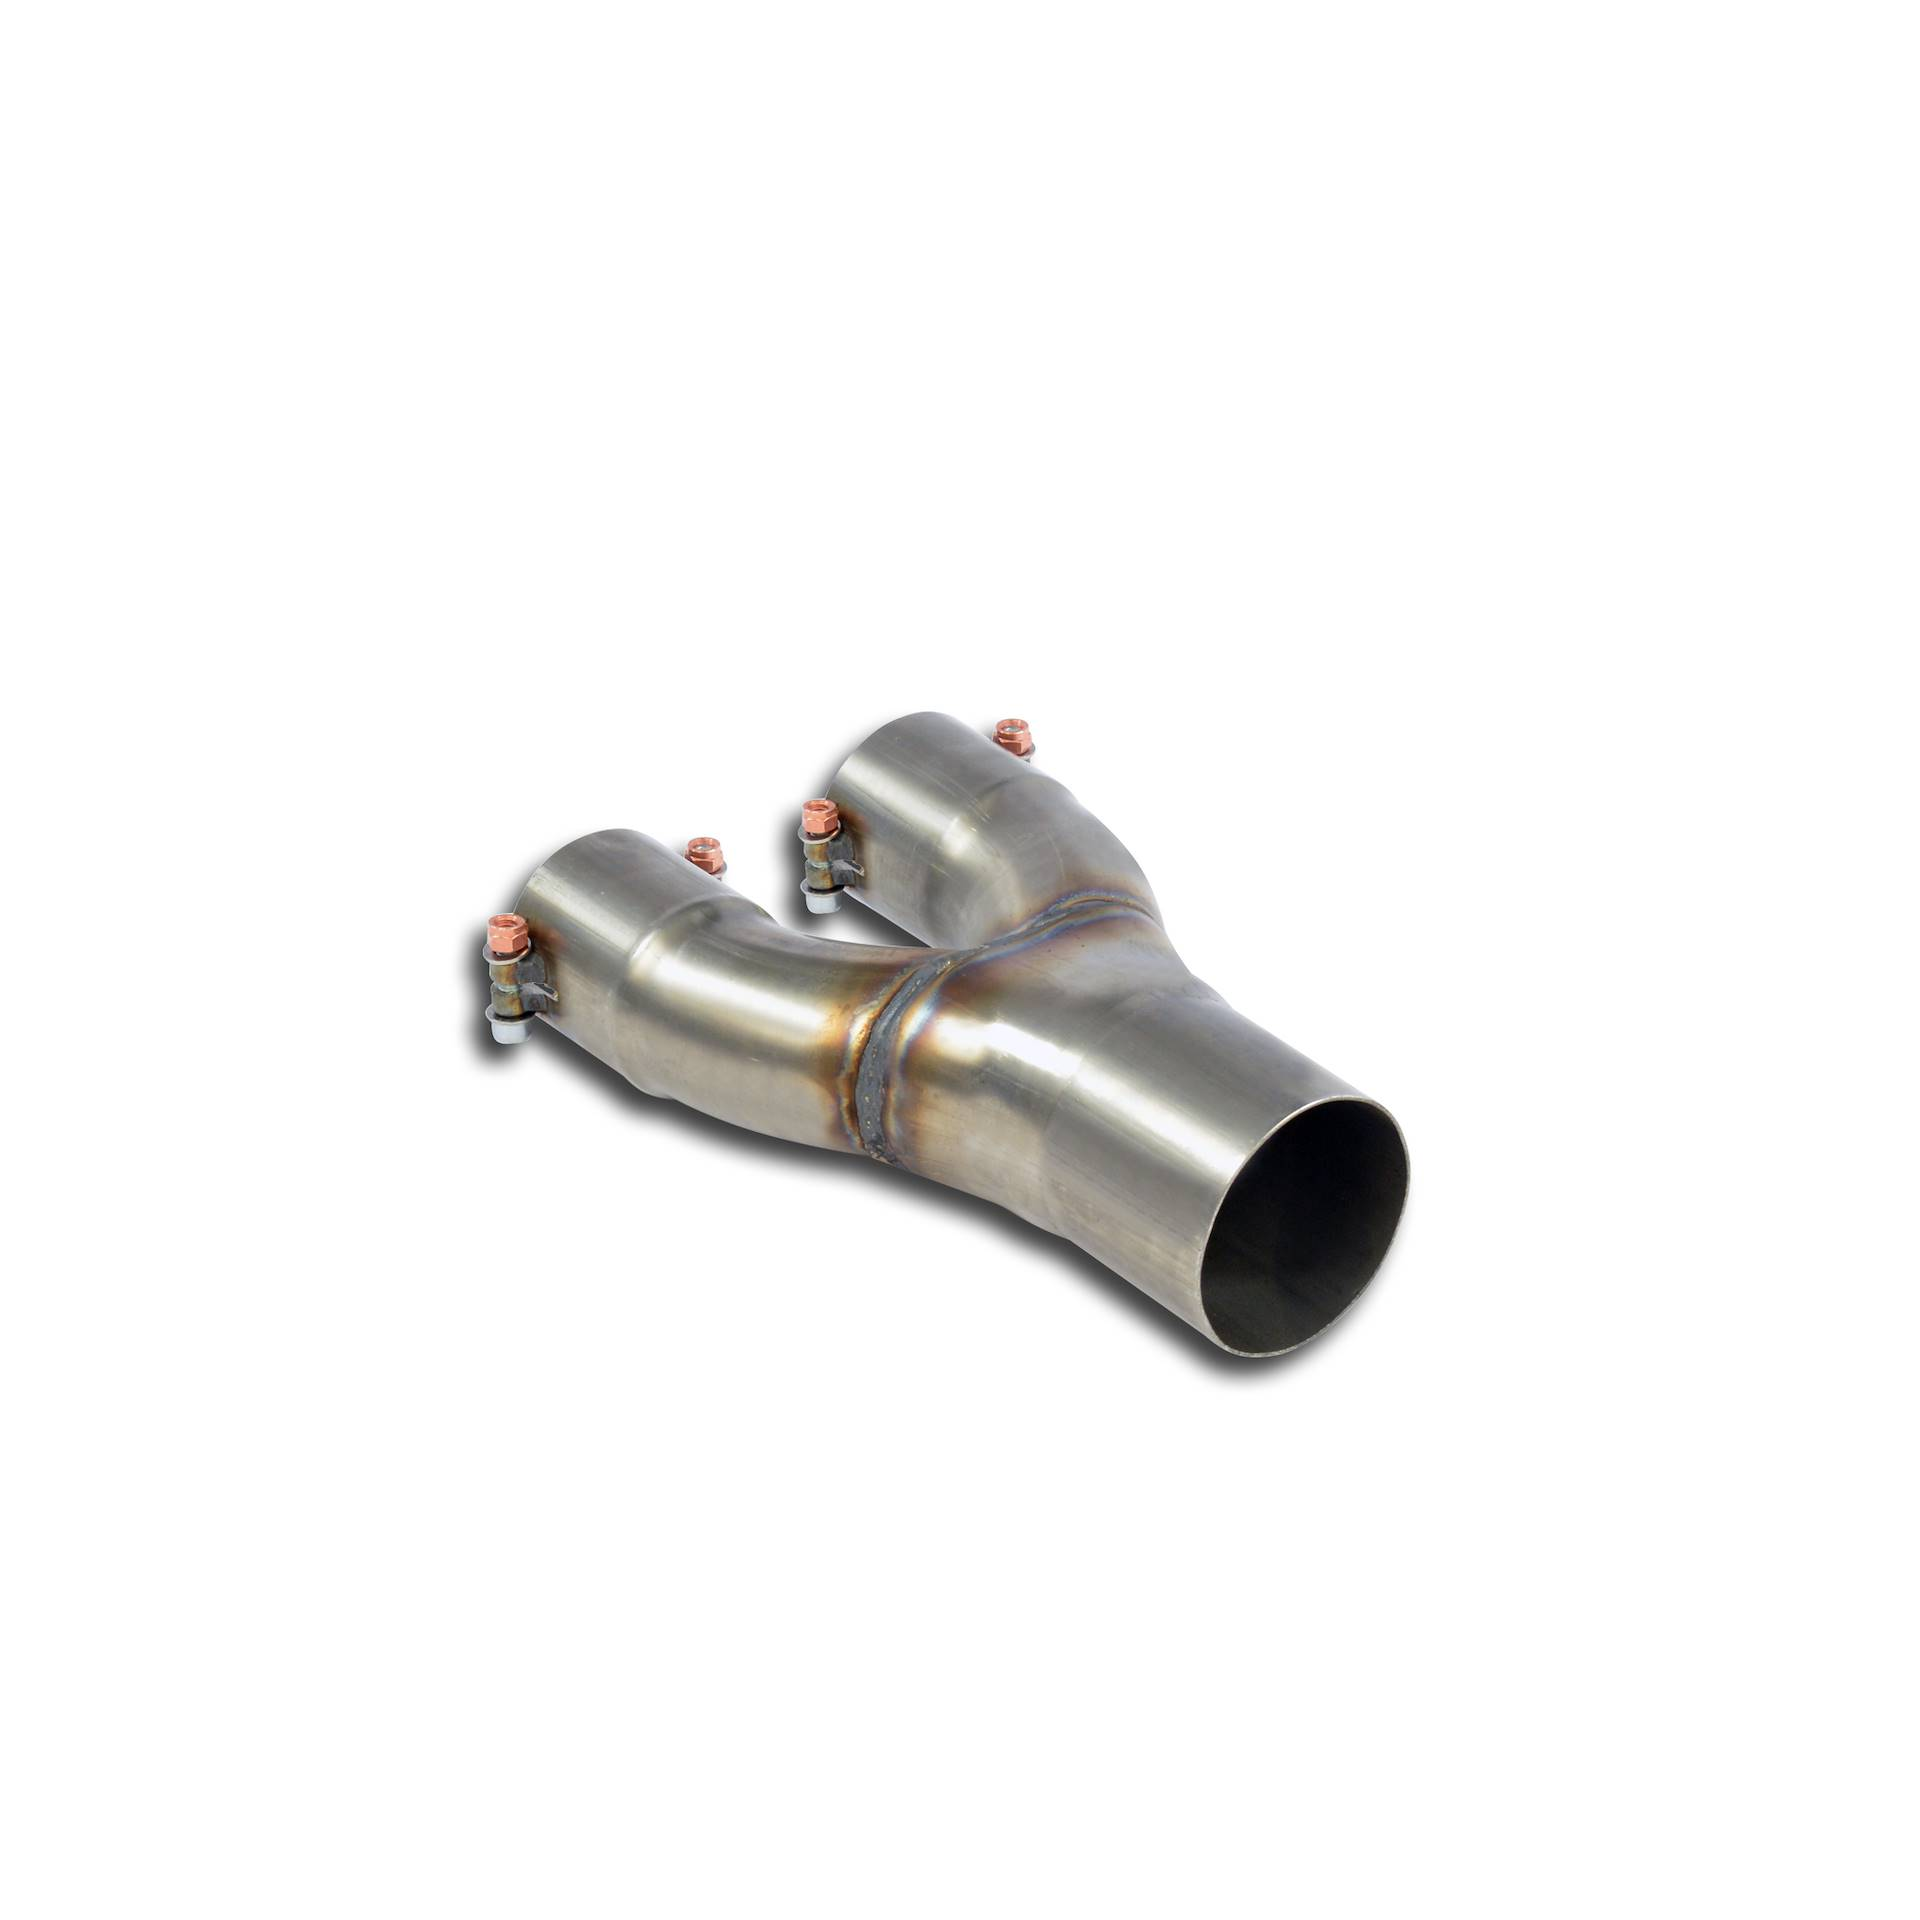 Performance sport exhaust for MERCEDES W205 C43 AMG, MERCEDES W205